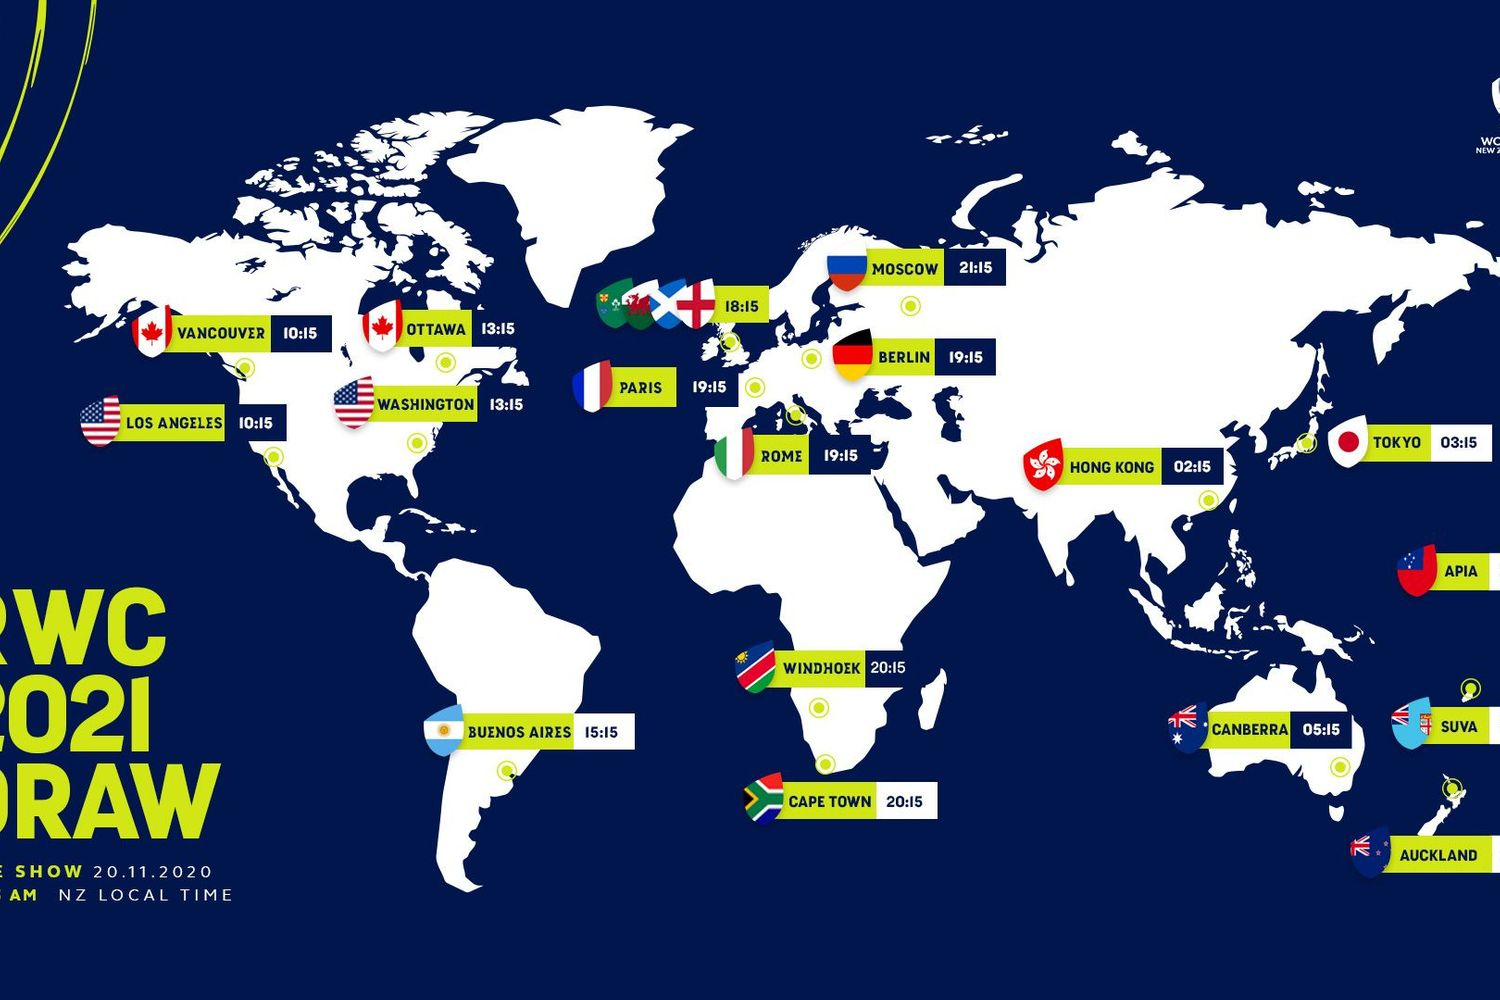 RWC 2021 Draw - Time zone map graphic